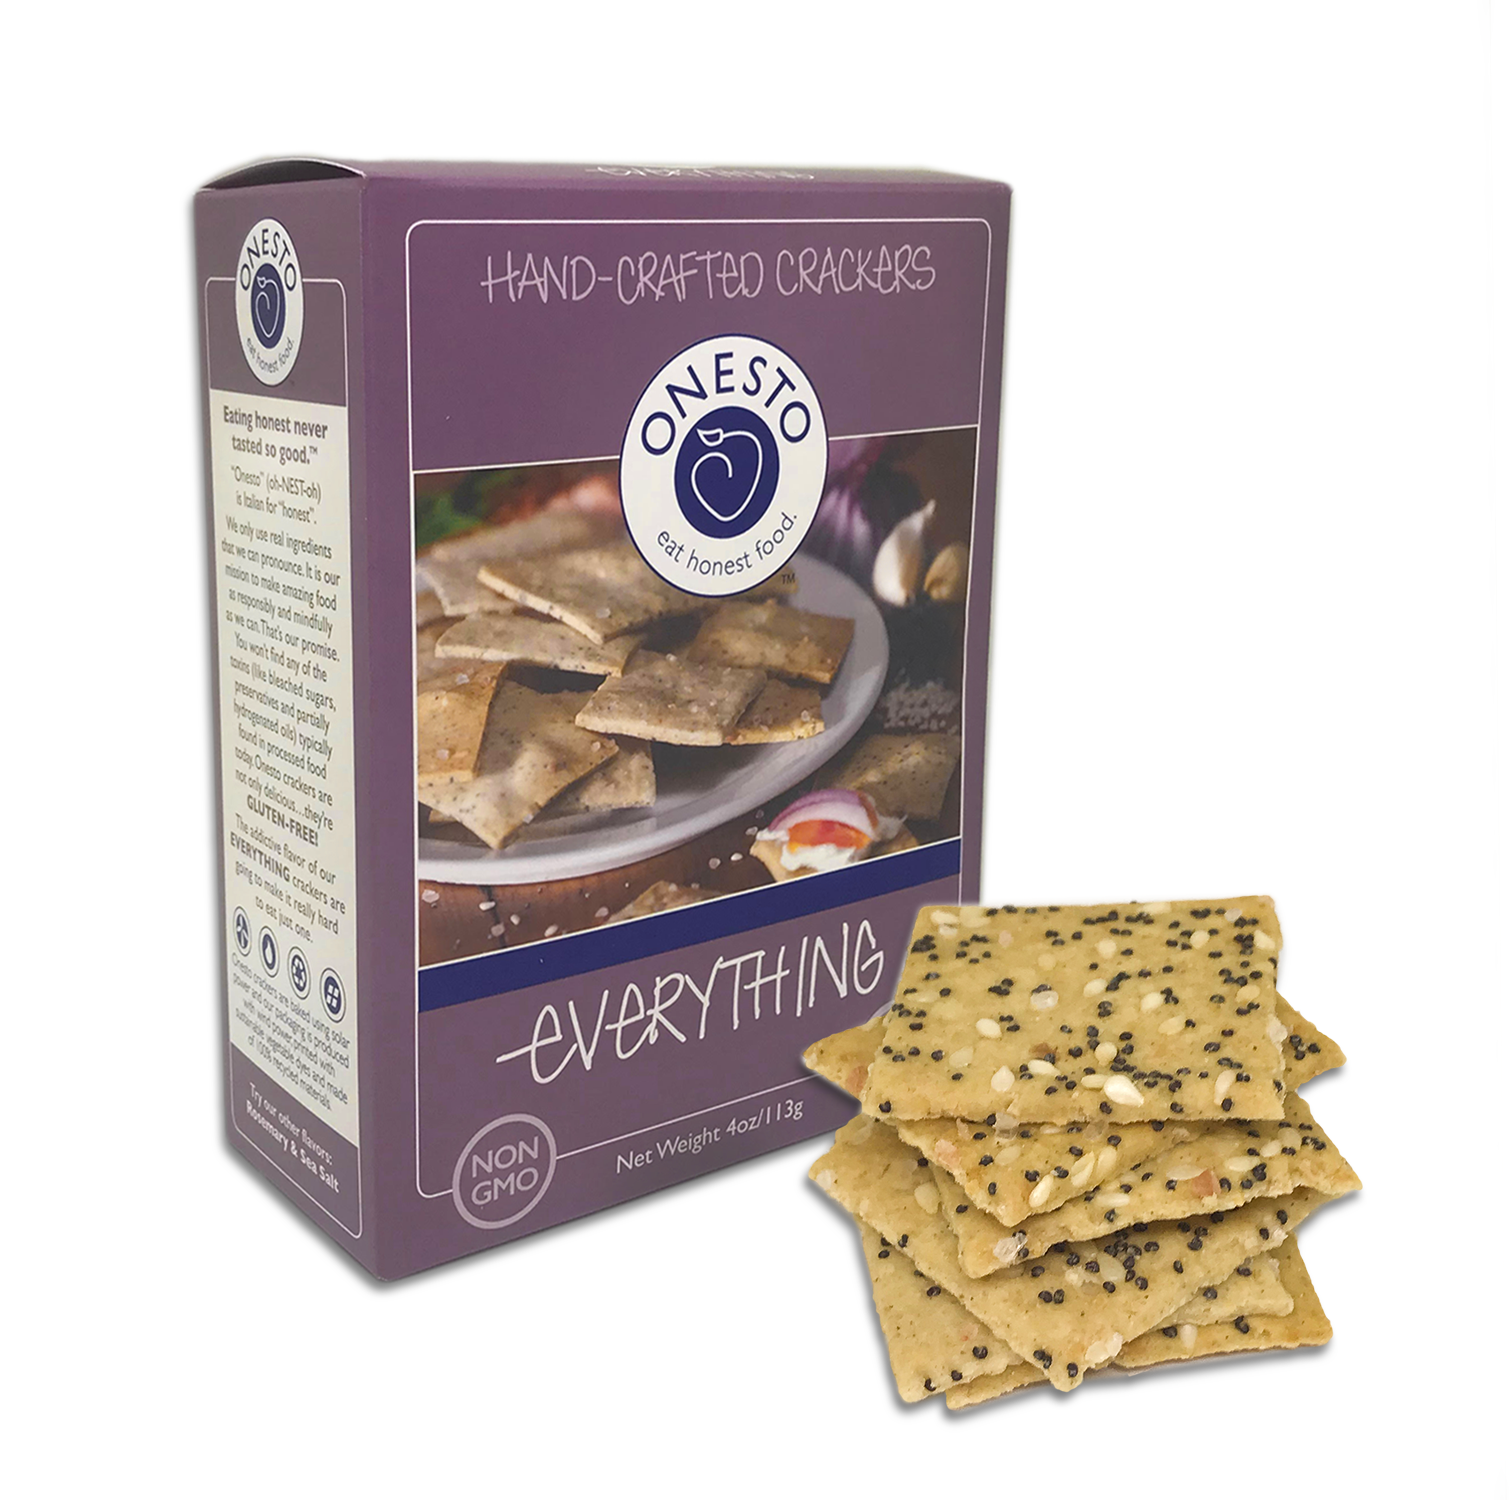 Onesto Foods - Onesto Foods Everything Crackers - Retail Pack